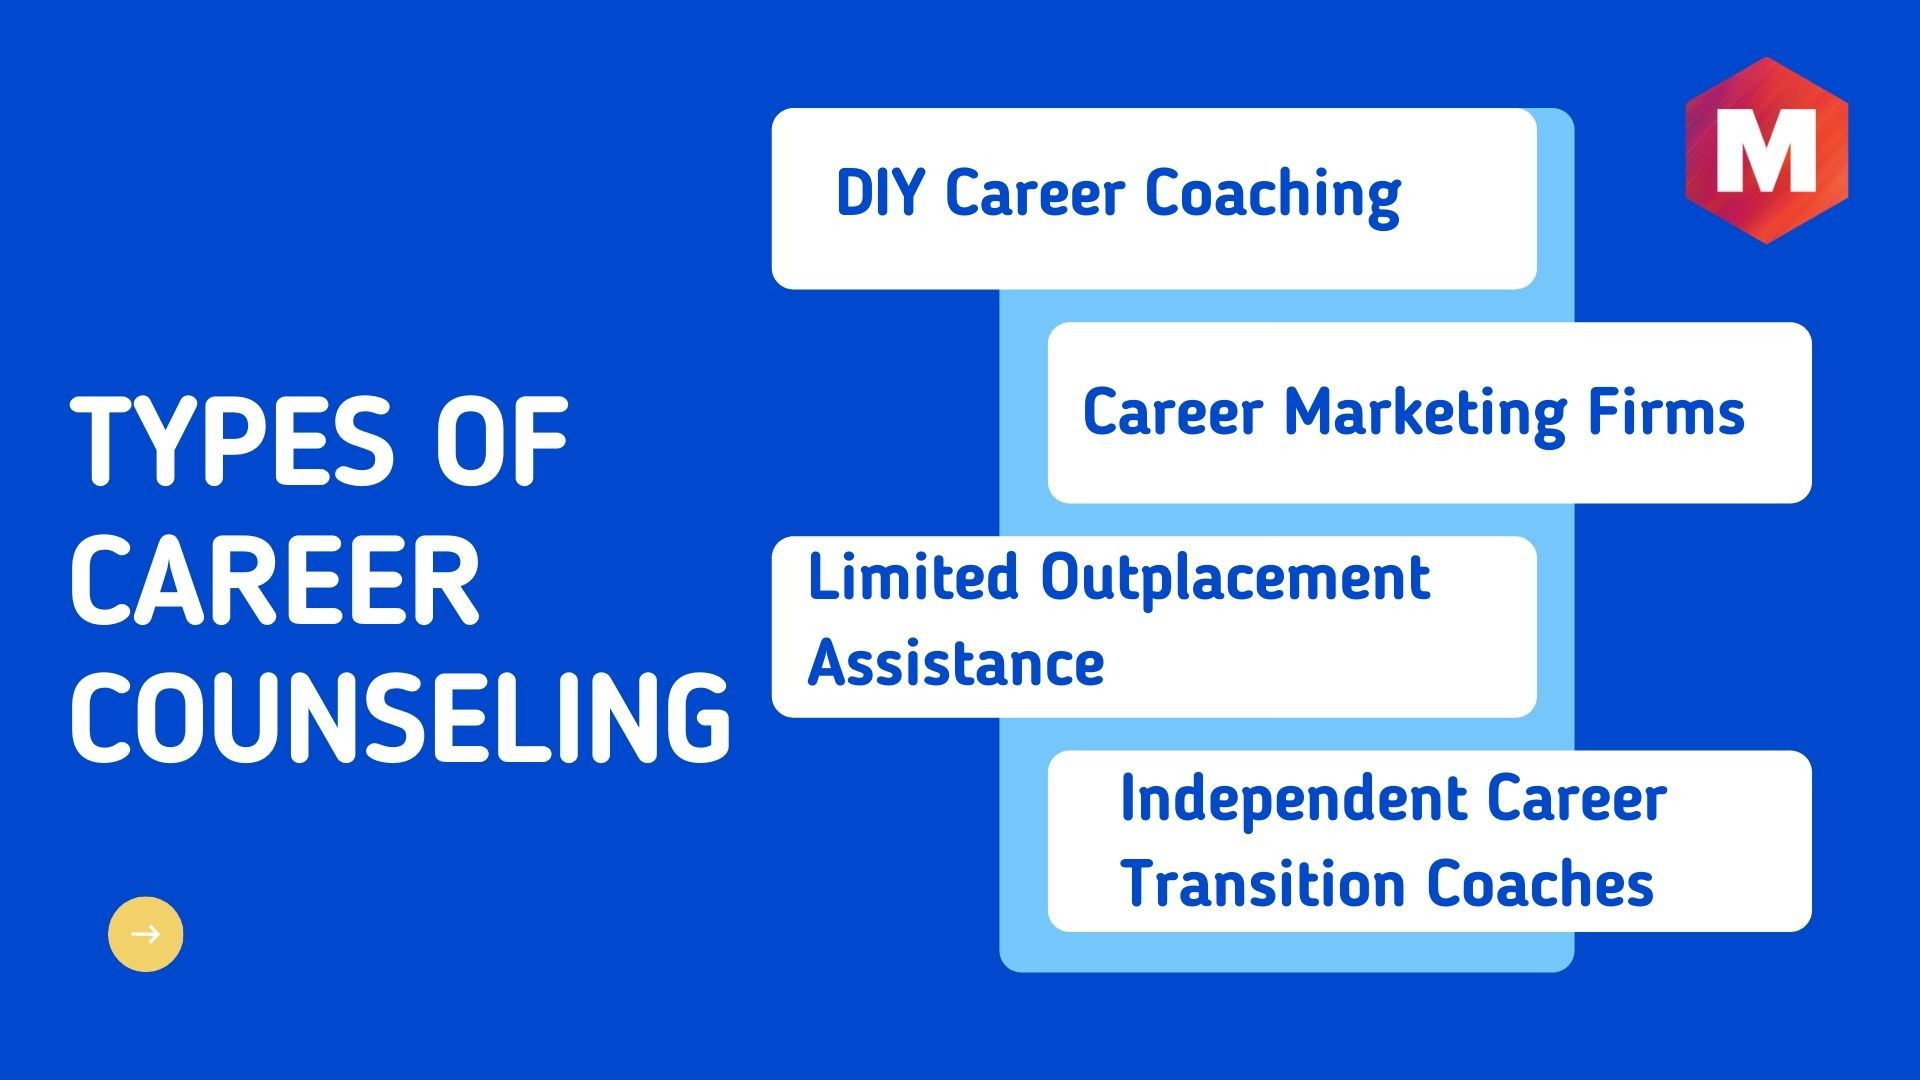 Types of Career Counseling